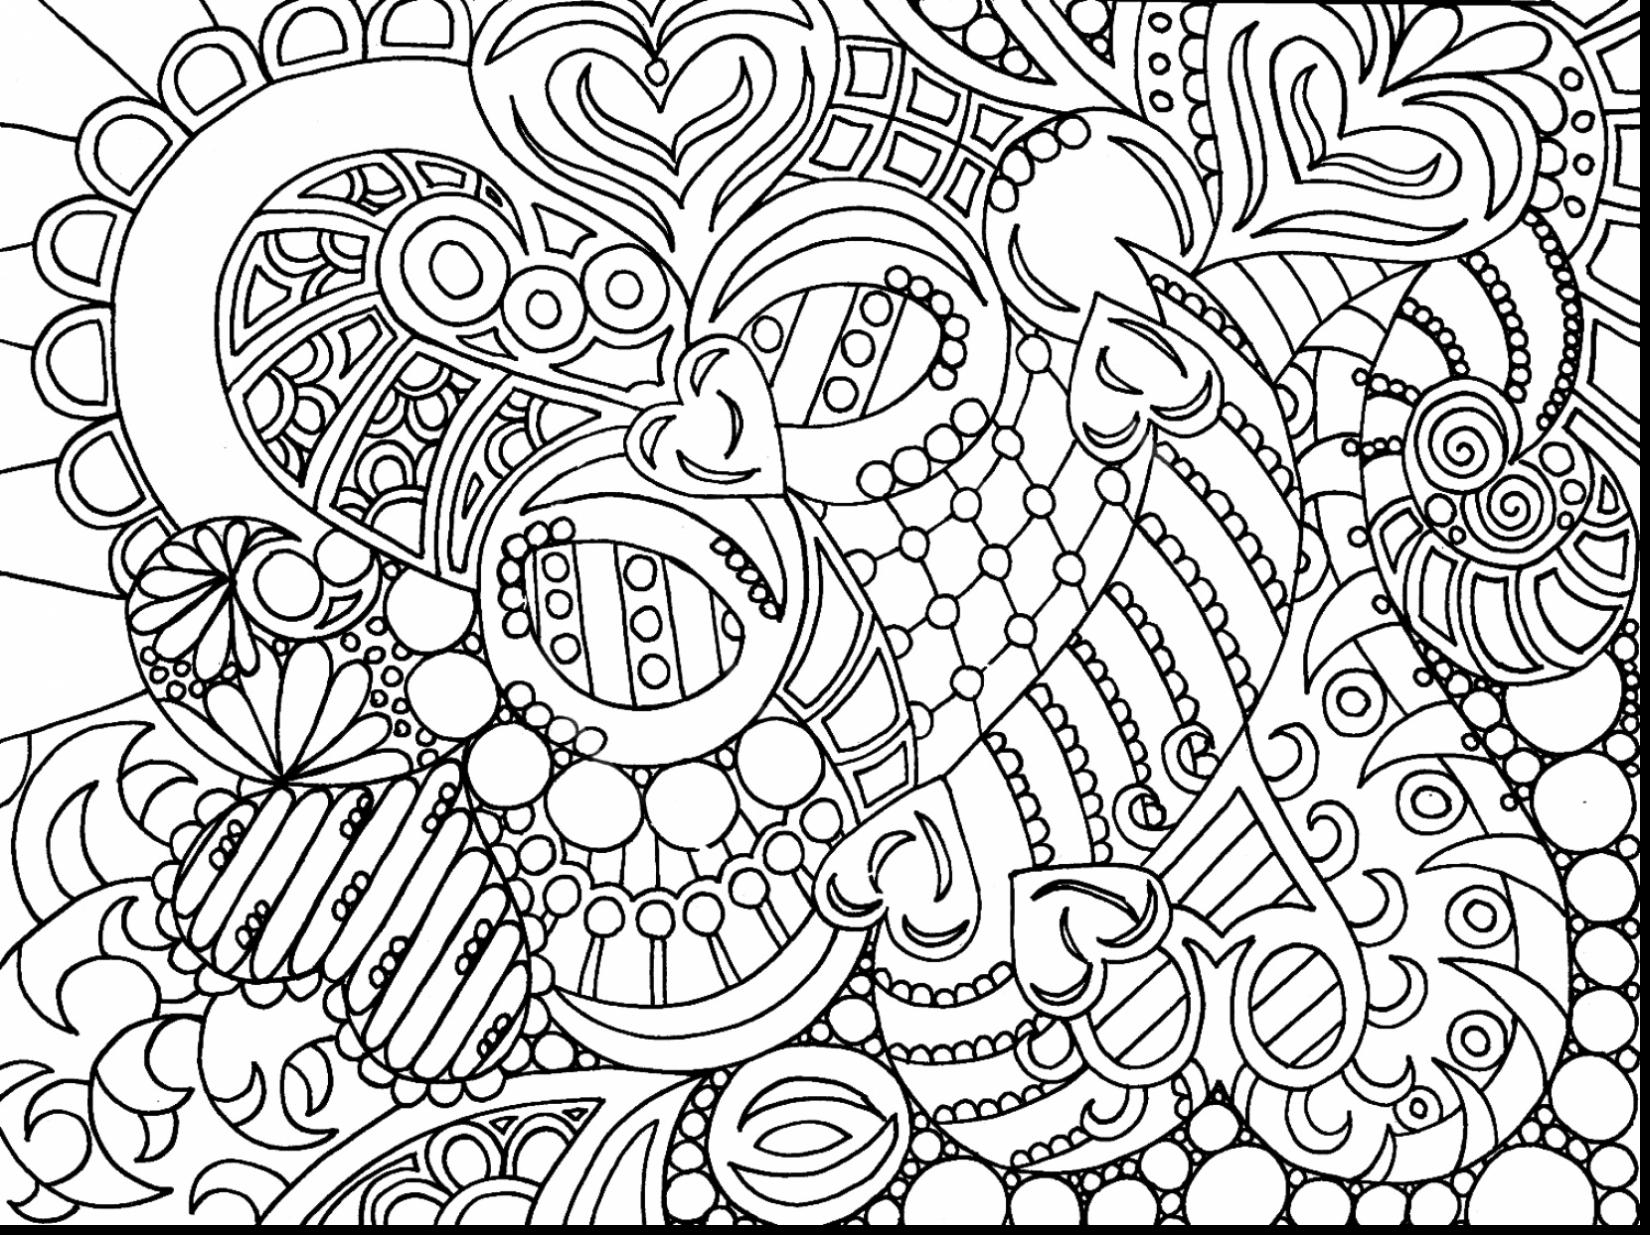 coloring pages for tweens cool coloring pages for tweens at getdrawings free download pages coloring tweens for